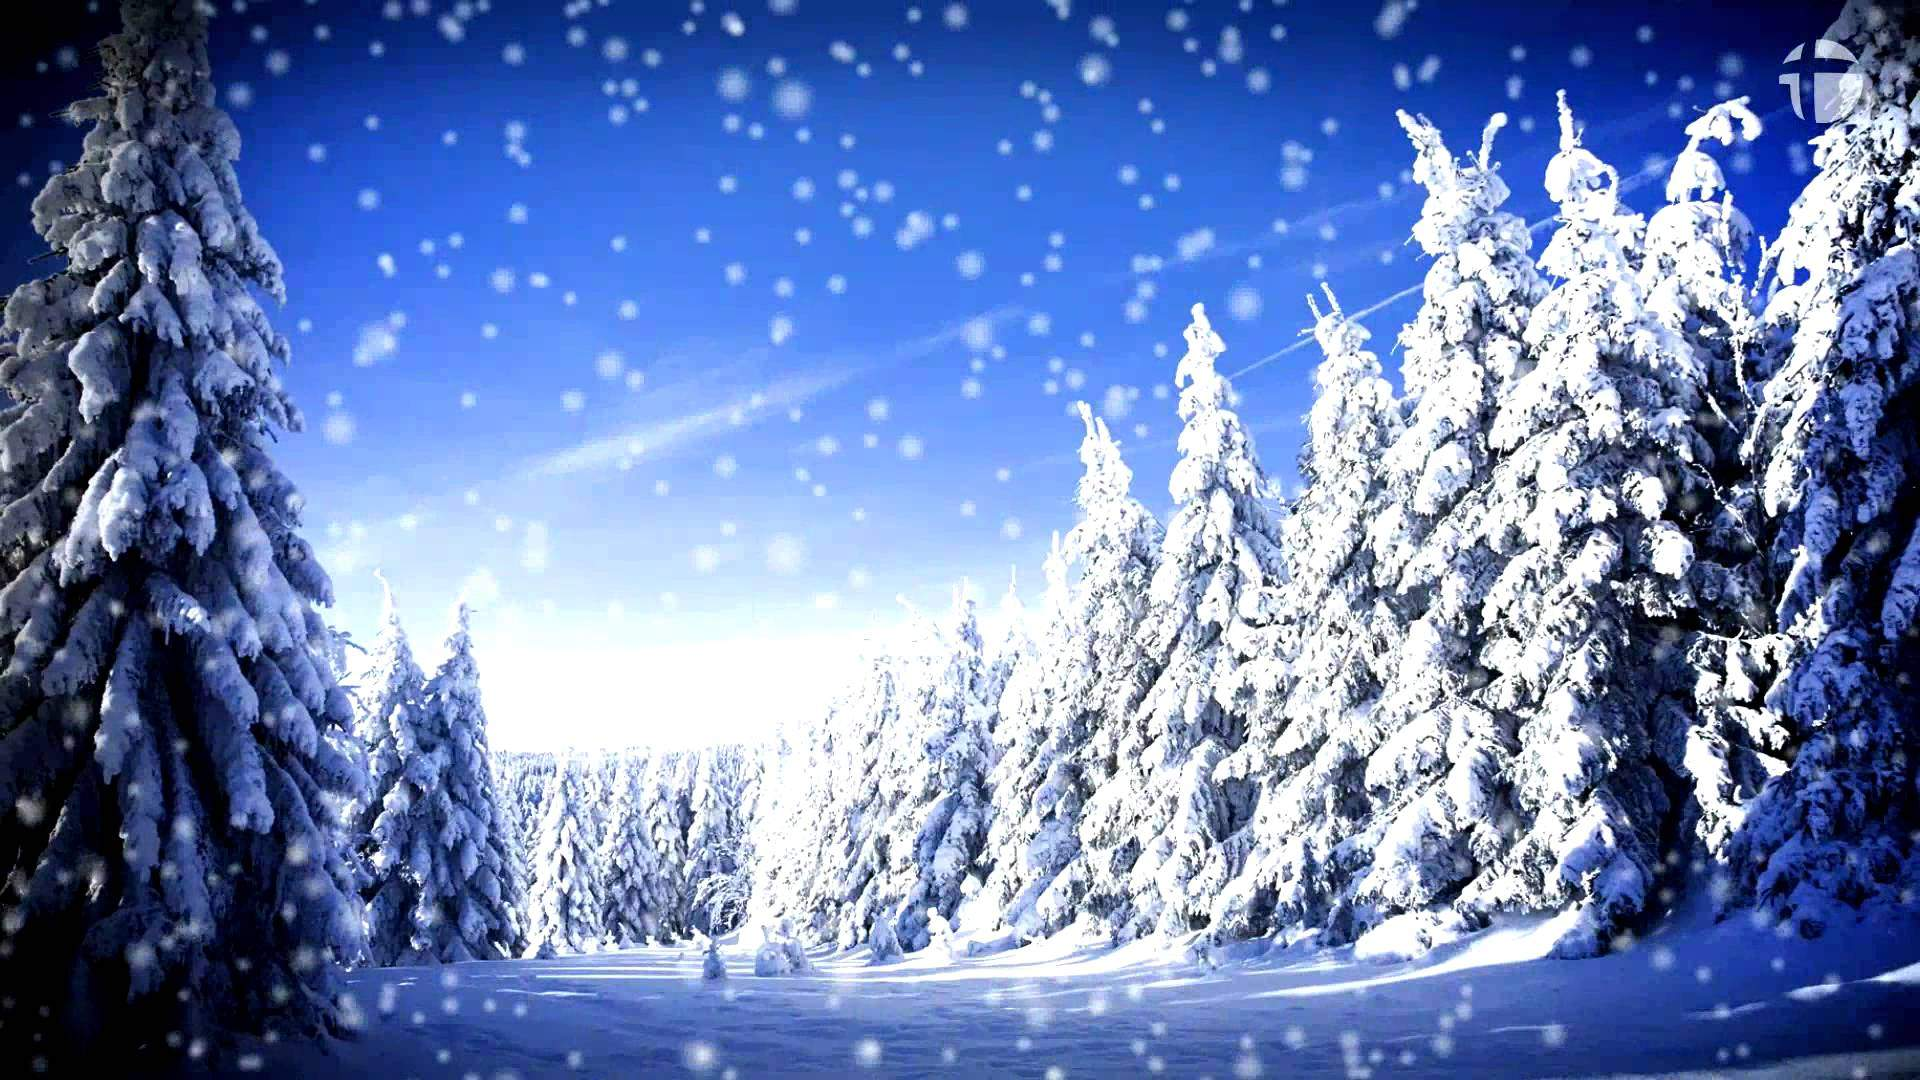 Traditional: Snow Falls Soft in the Night